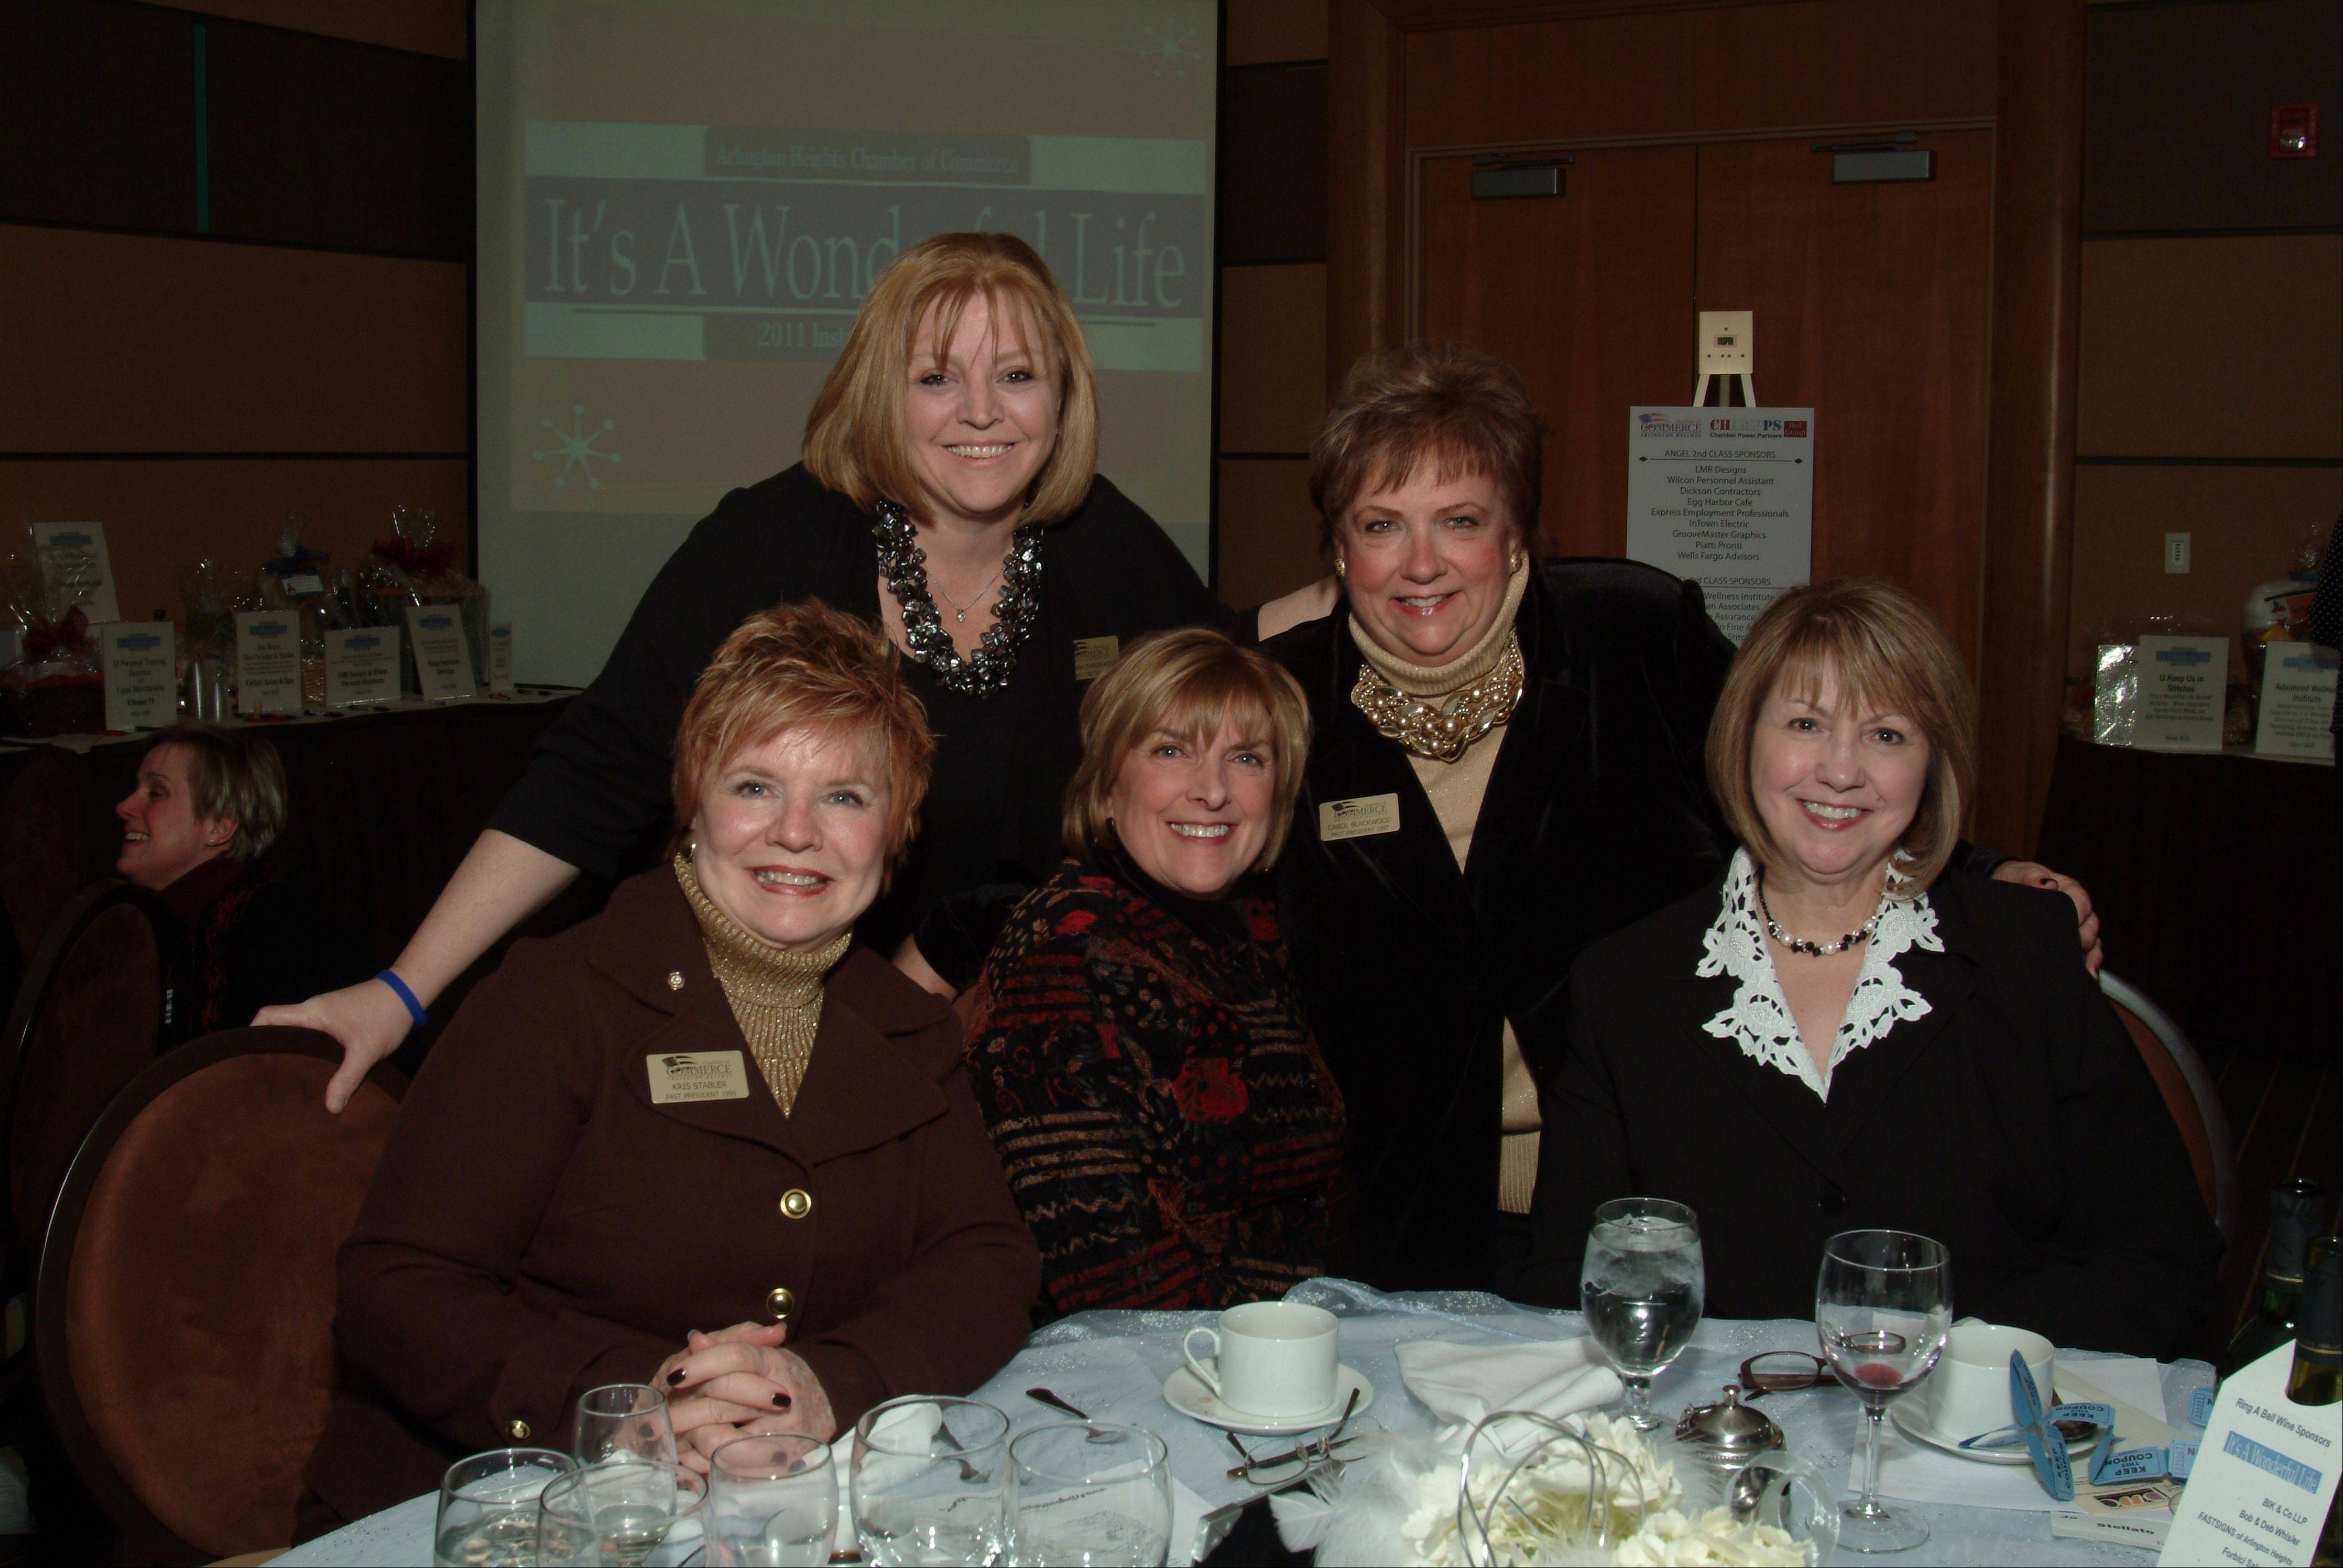 Dianna Ehrenfried, back row, left, with some other prominent Arlington Heights area women at the 2012 installation dinner. Beside her in back is Arlington Heights Trustee Carol Blackwood. In front, from left, Kristine Stabler-Nieman, vice president of community affairs for Arlington Park; Lauree Harp, chairwoman of the Arlington Heights recent quasquicentennial celebration; and Jo Stellato, the Wheeling Township administrator.